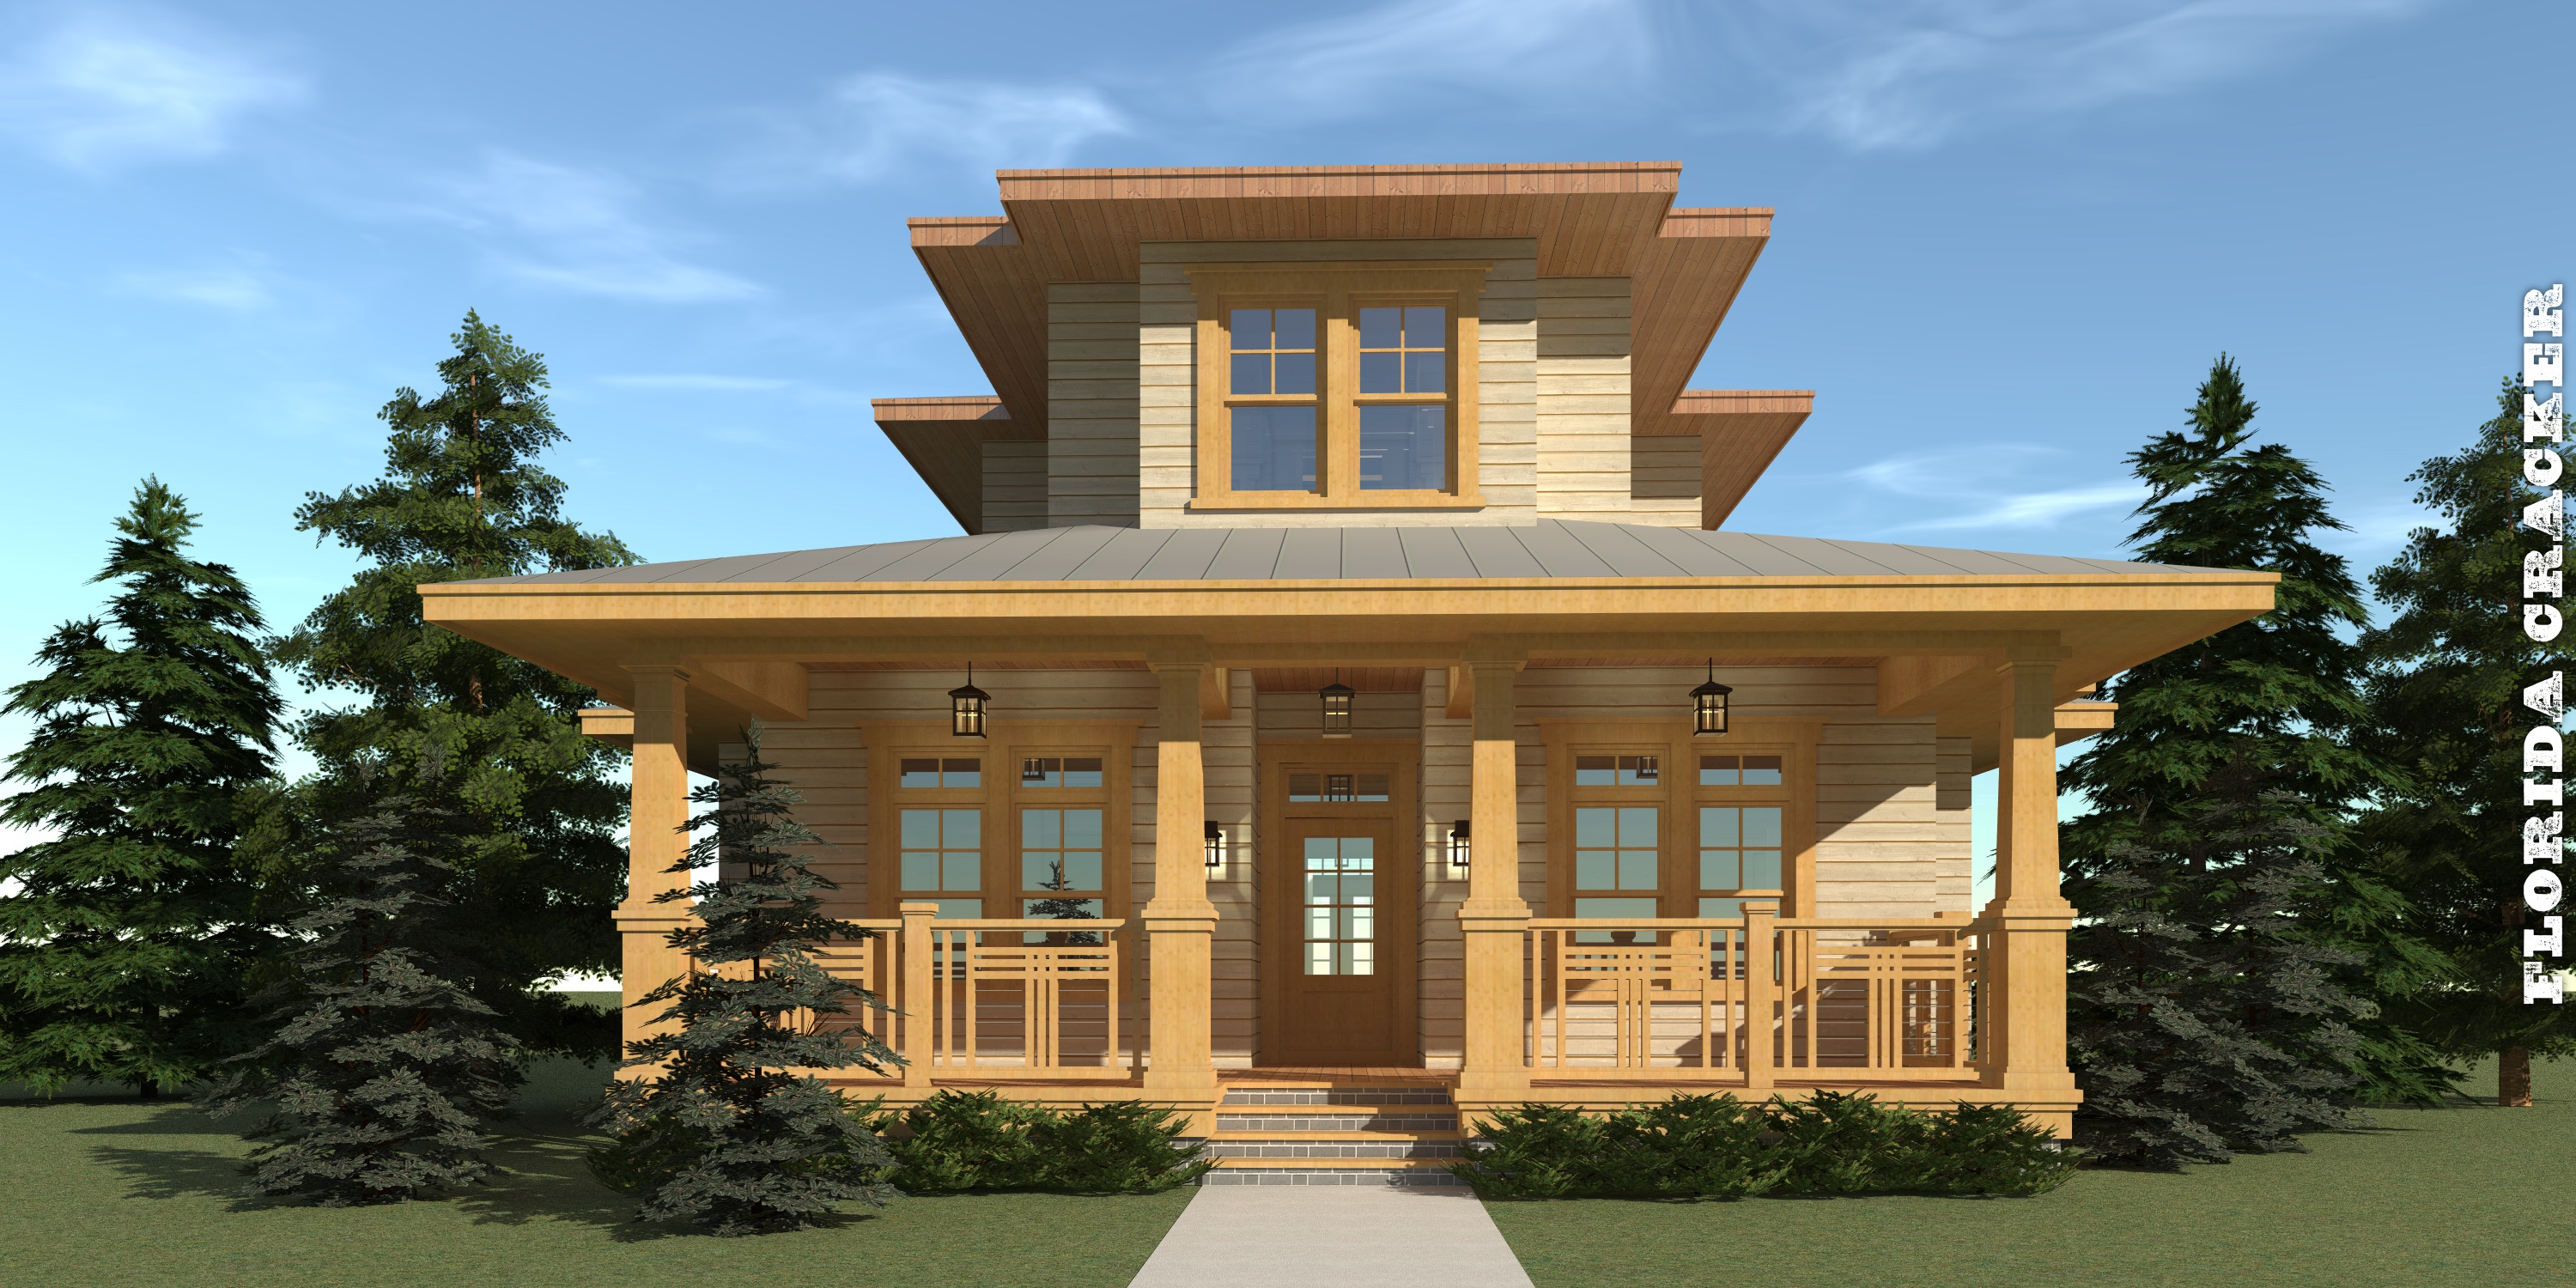 Sunset house plans find floor plans home designs and house for Buy house plans